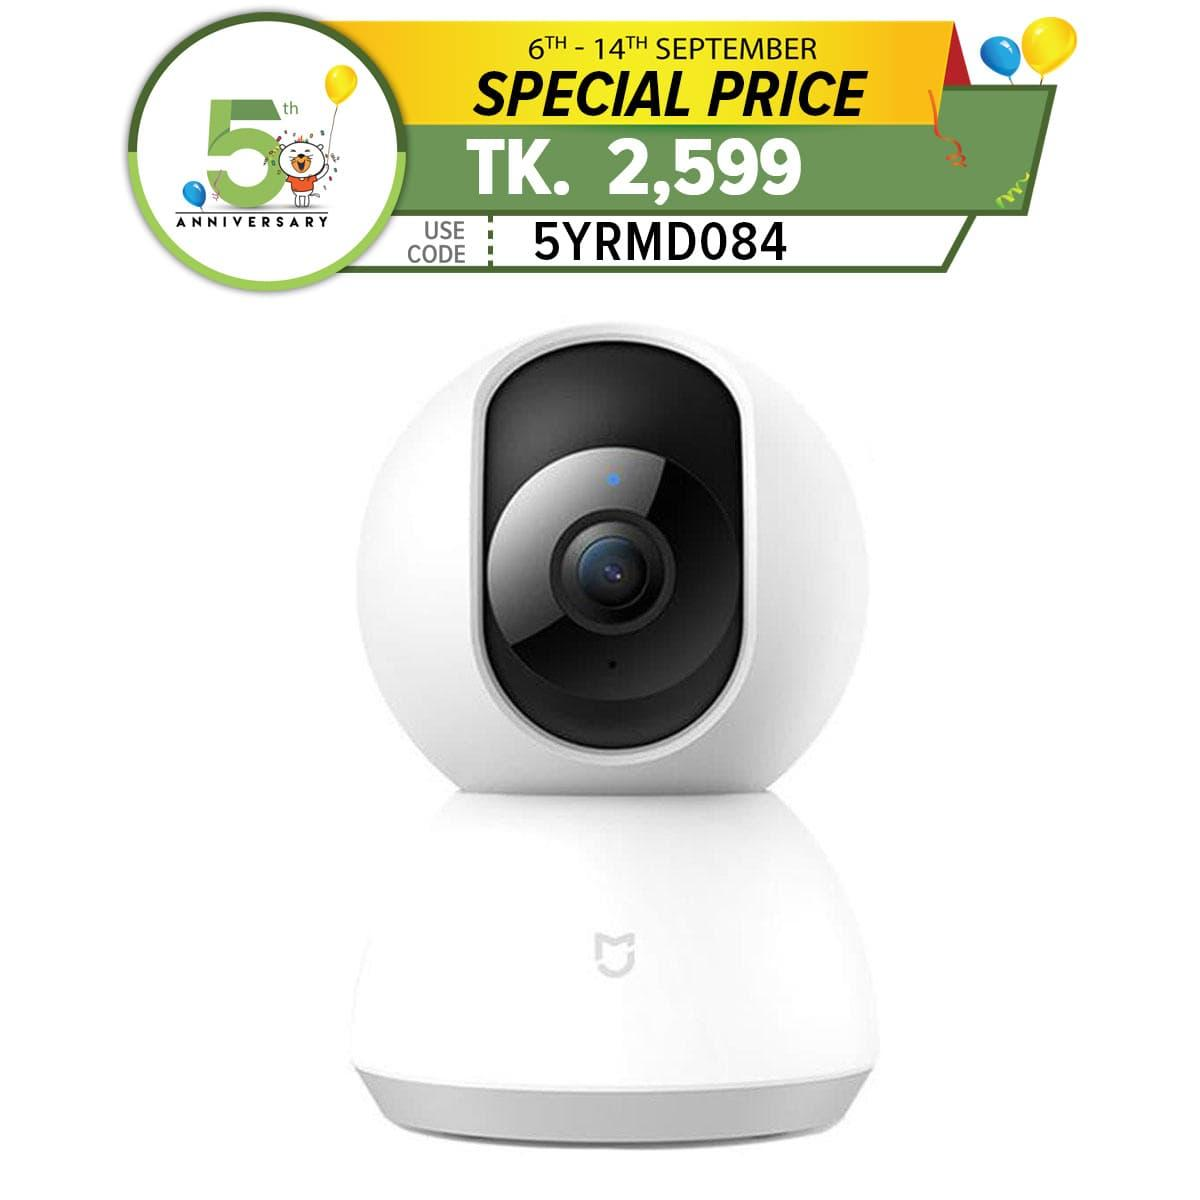 MI Smart Home WiFi Security Camera 360° 1080P New Edition